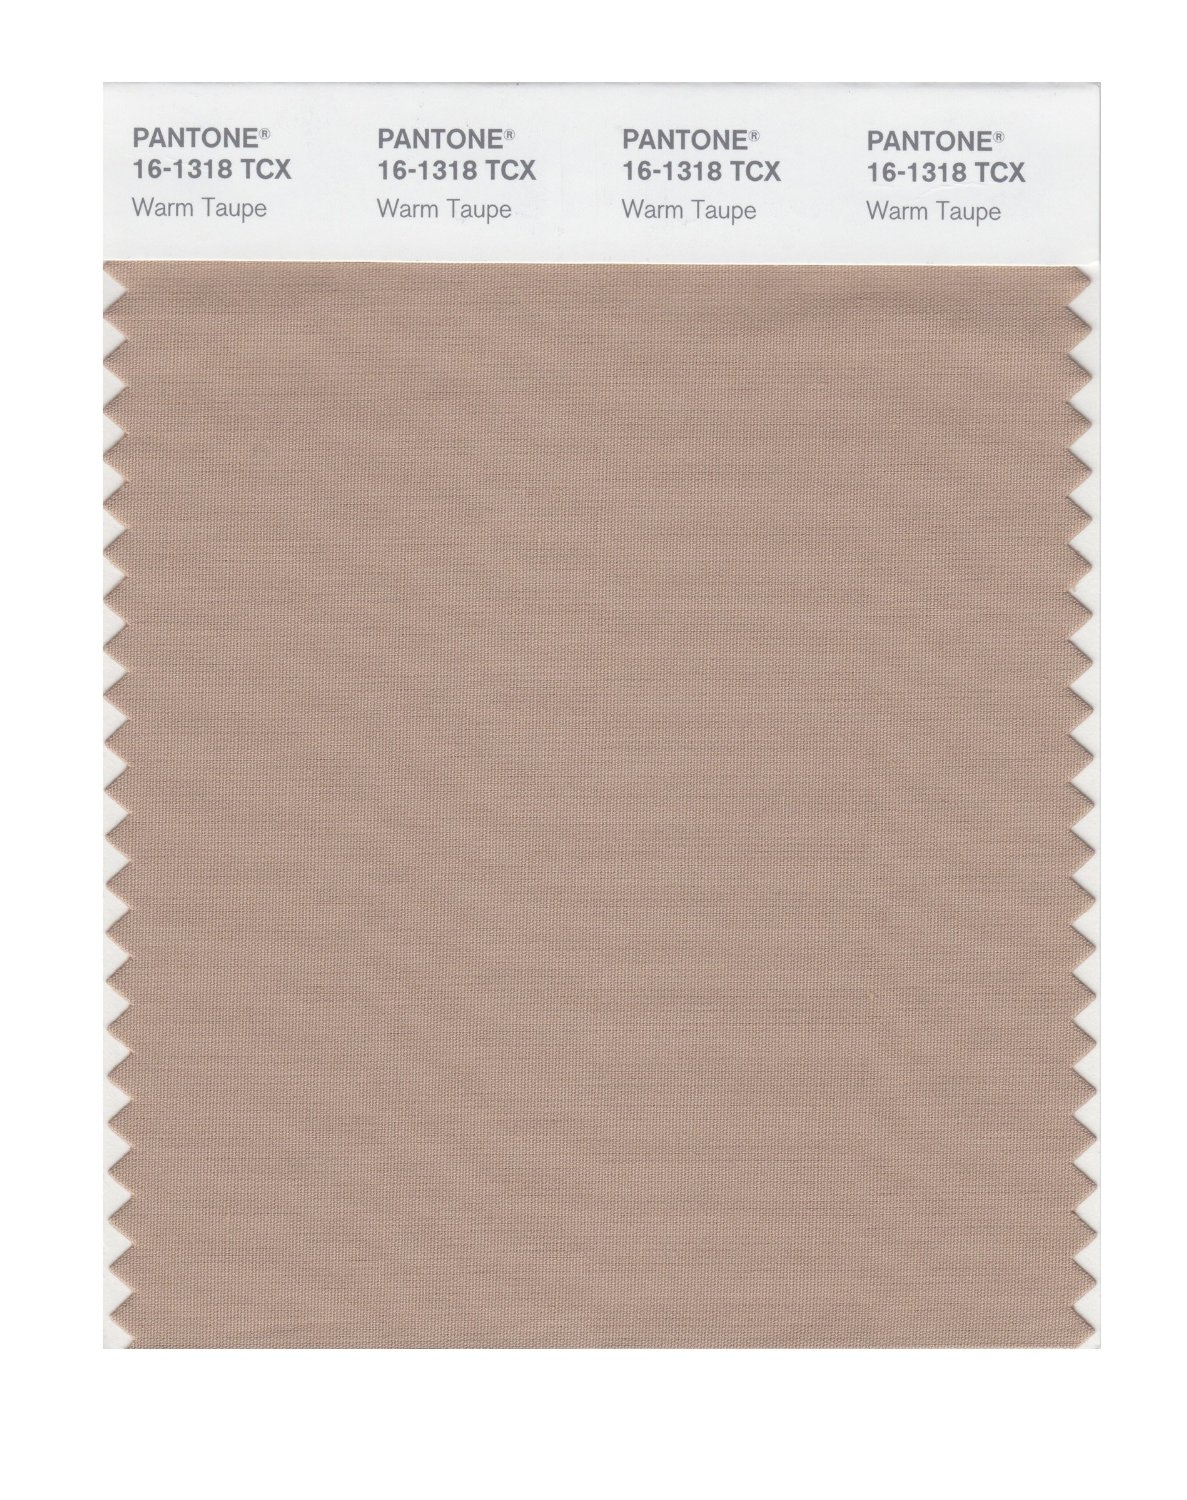 Pantone Smart Swatch 16-1318 Warm Taupe